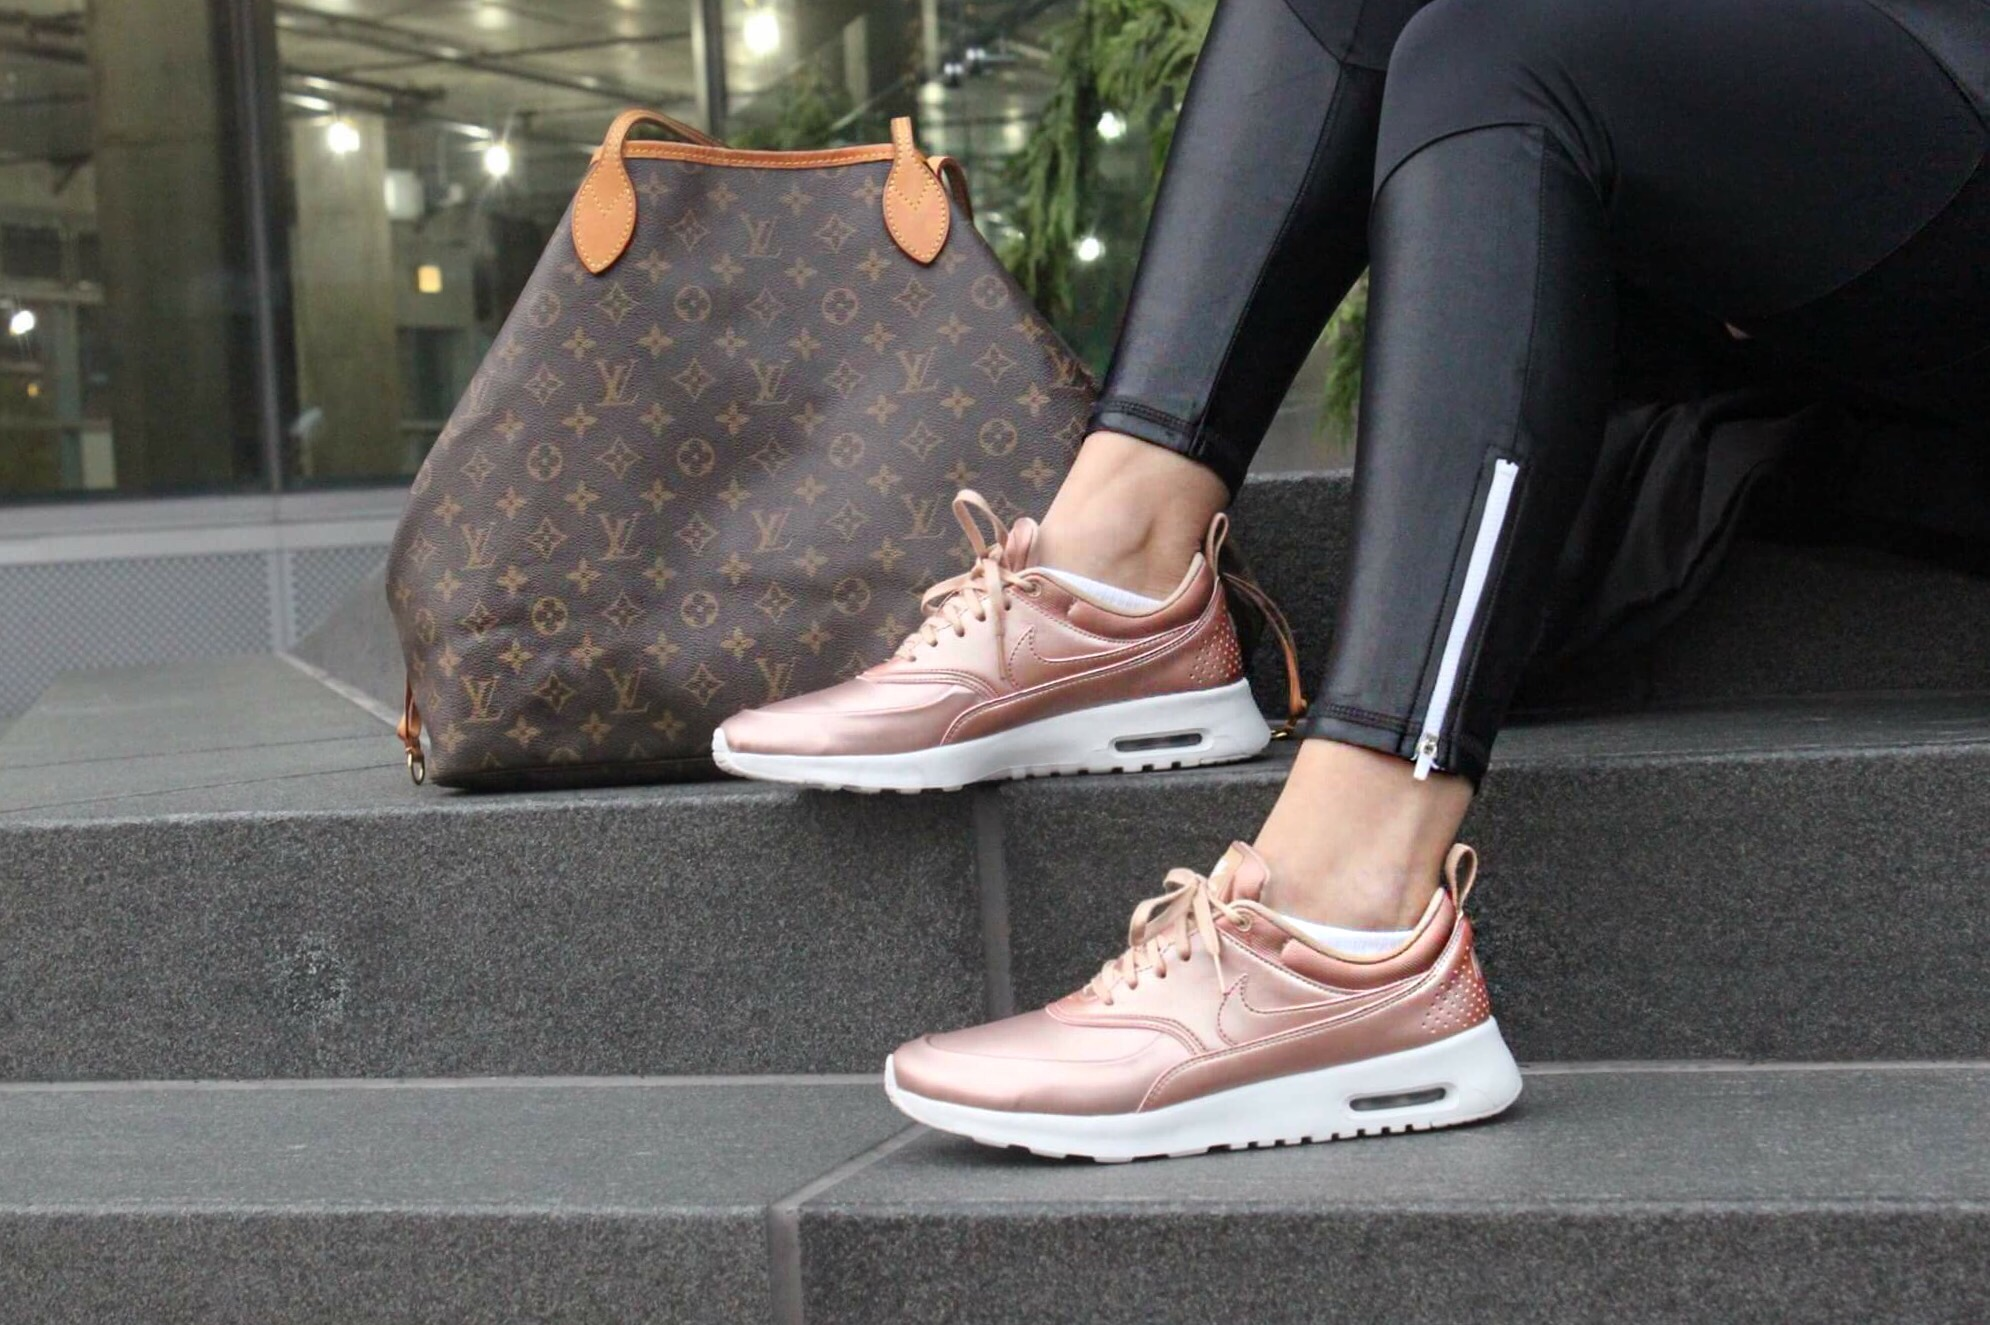 Comfort was key when preparing for Black Friday shopping and wearing the  comfy-cute Metallic Rose Gold Air Max Thea sneakers was a no-brainer.